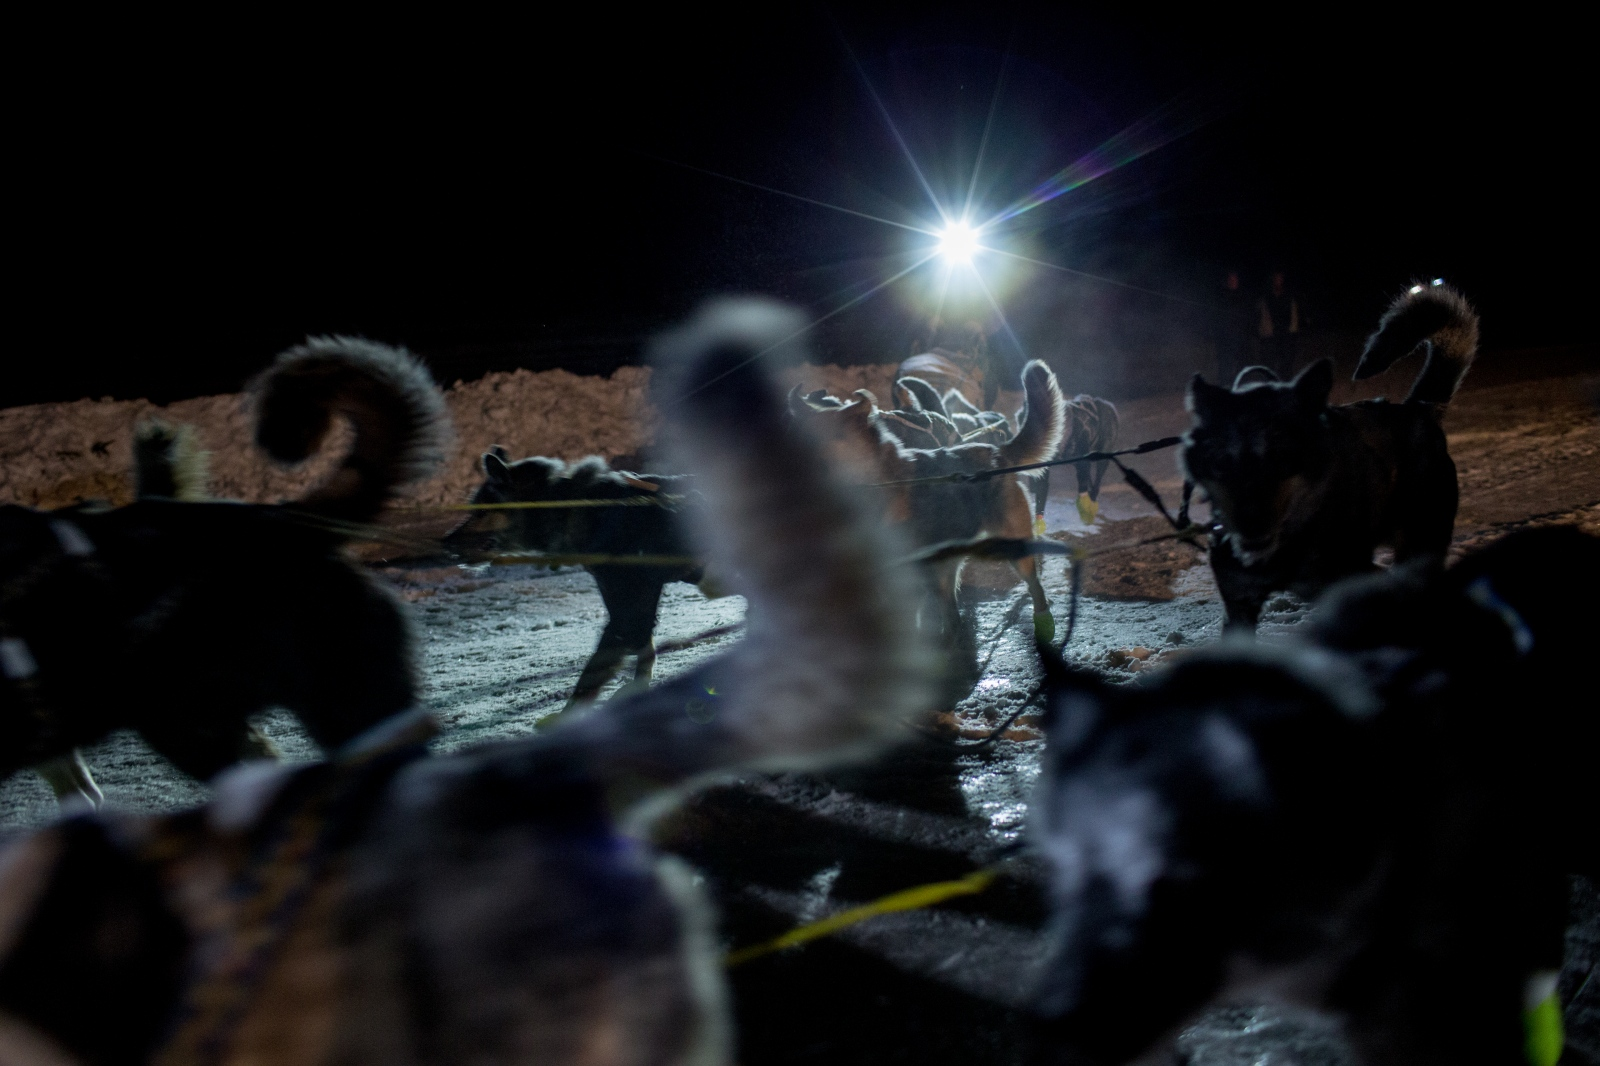 Iditarod musher Brent Sass arrives with his team in Unalakleet on March 12, 2016. Brent was the first to arrive at the checkpoint of the 85 competing dog sled teams.